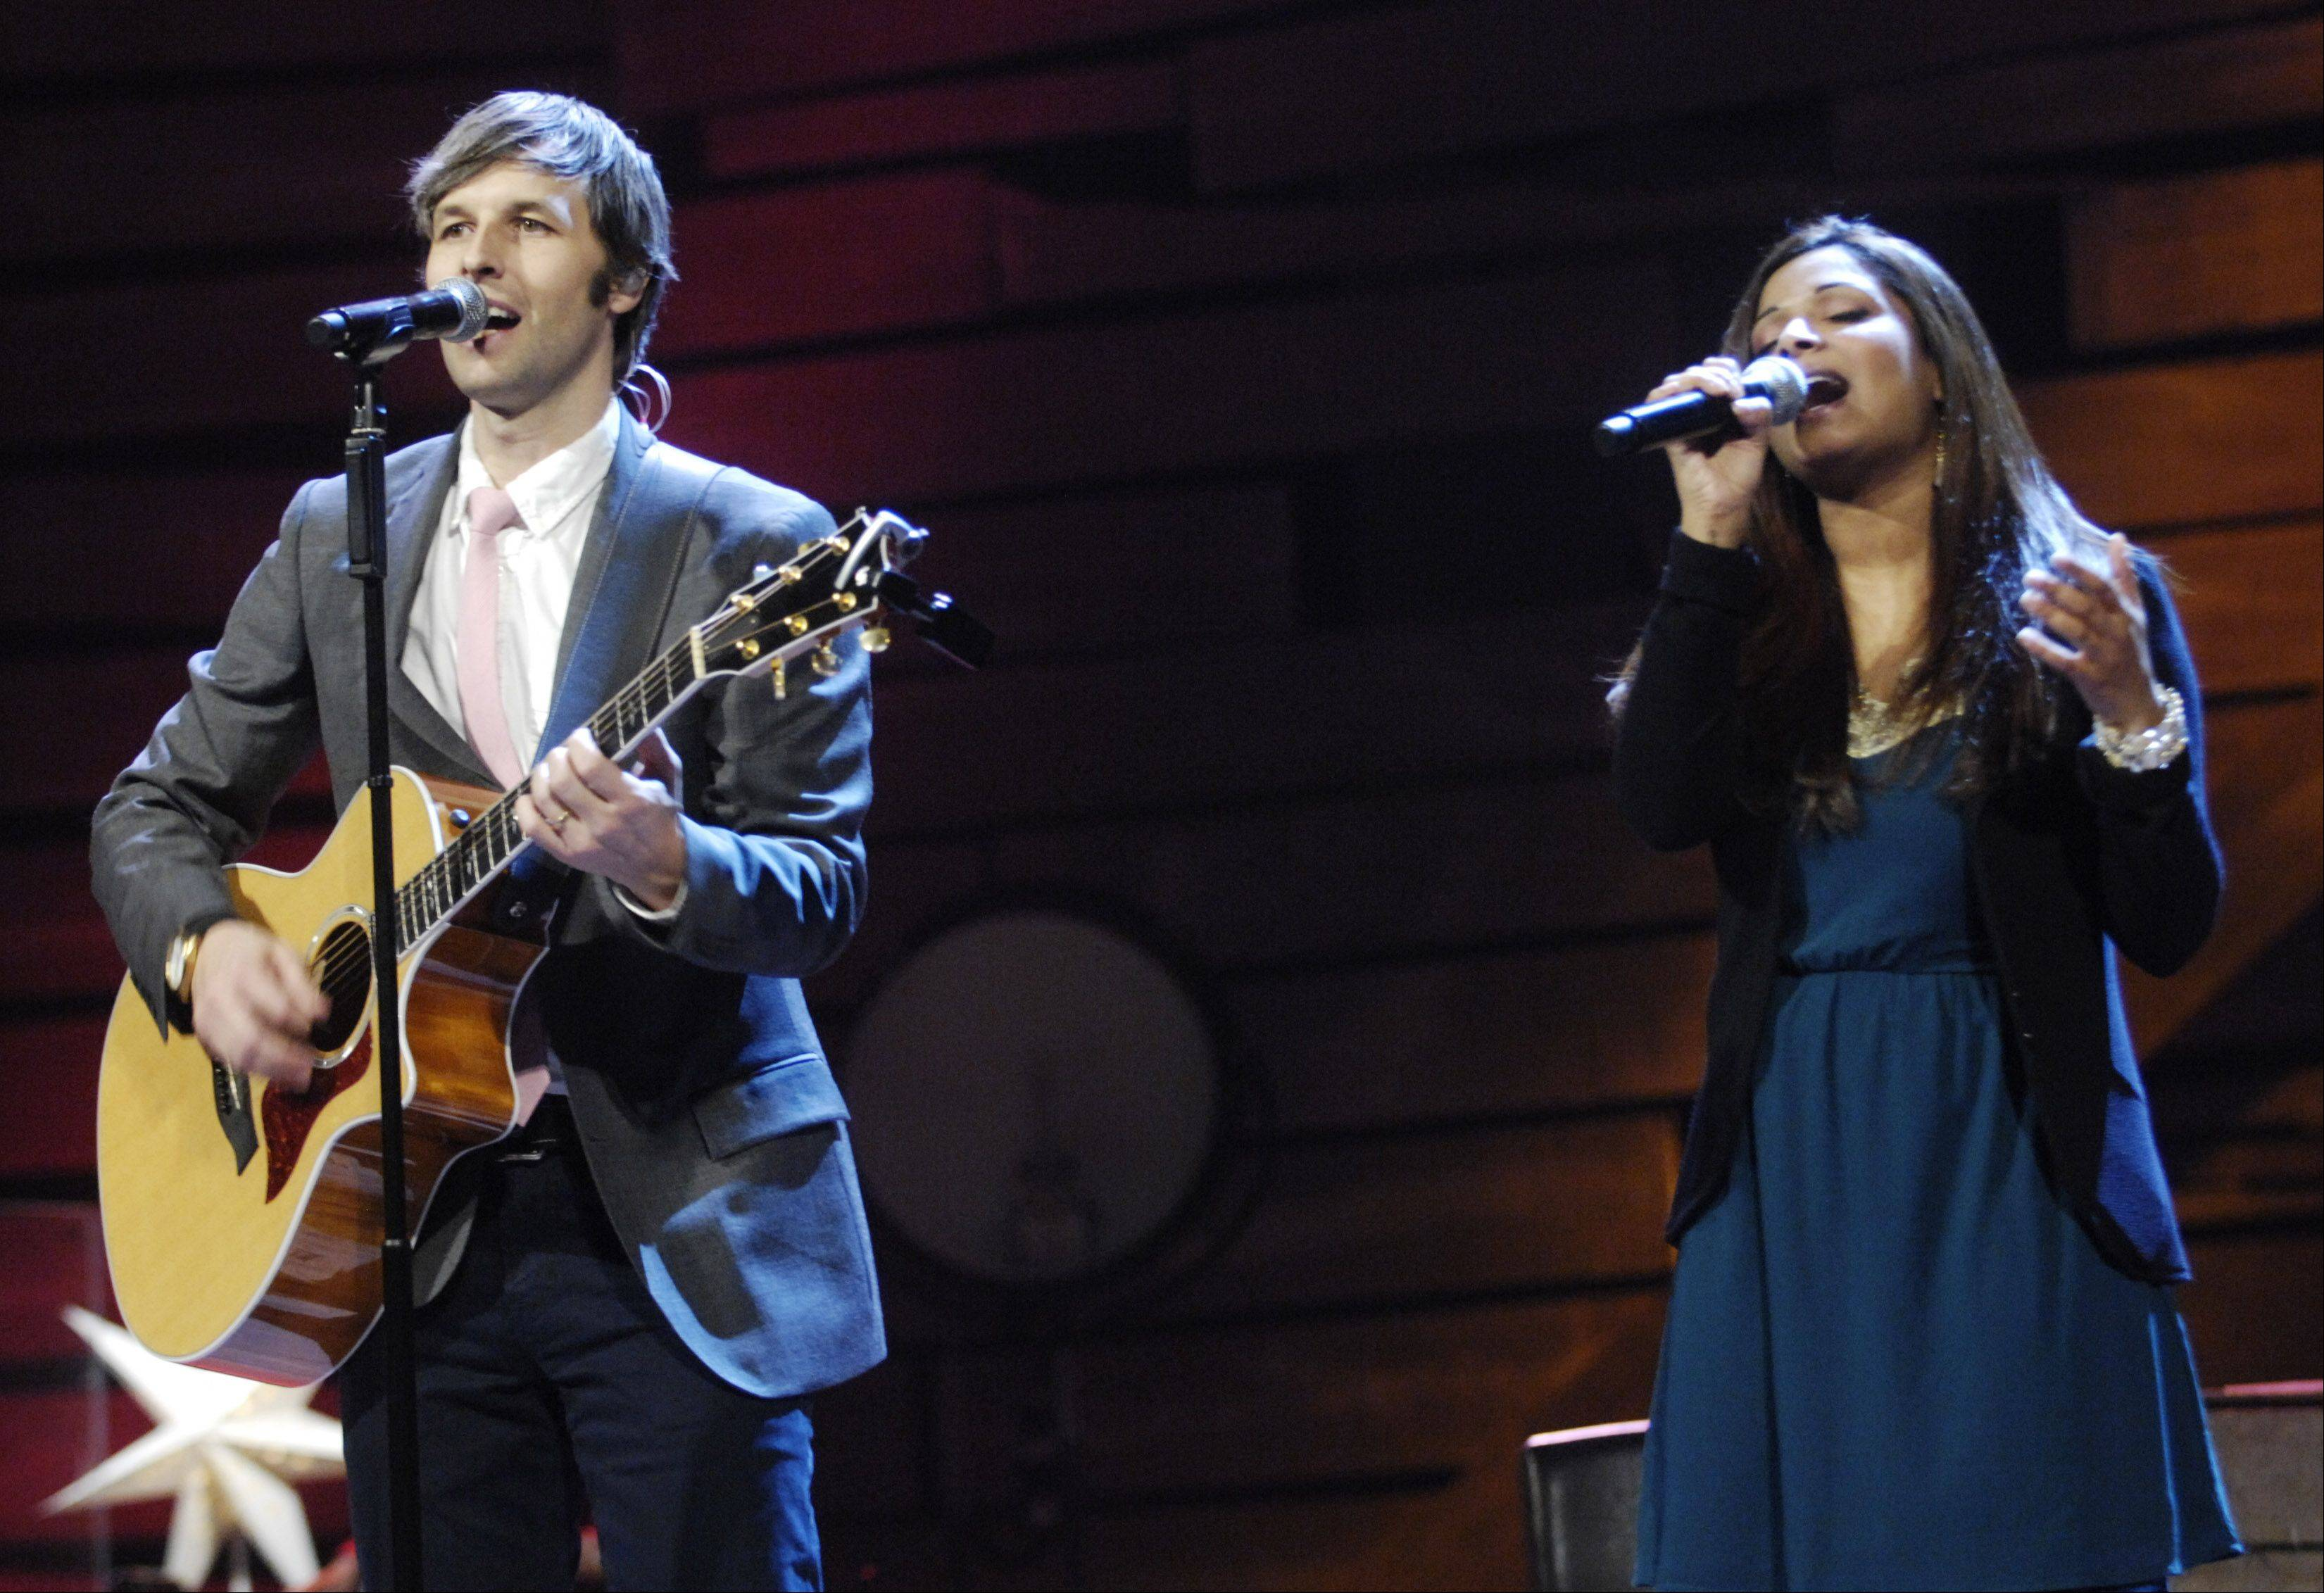 Matt Lundgren, left, and Alisha Thomas sing during dress rehearsal Tuesday for Willow Creek Community Church's Christmas services in South Barrington.